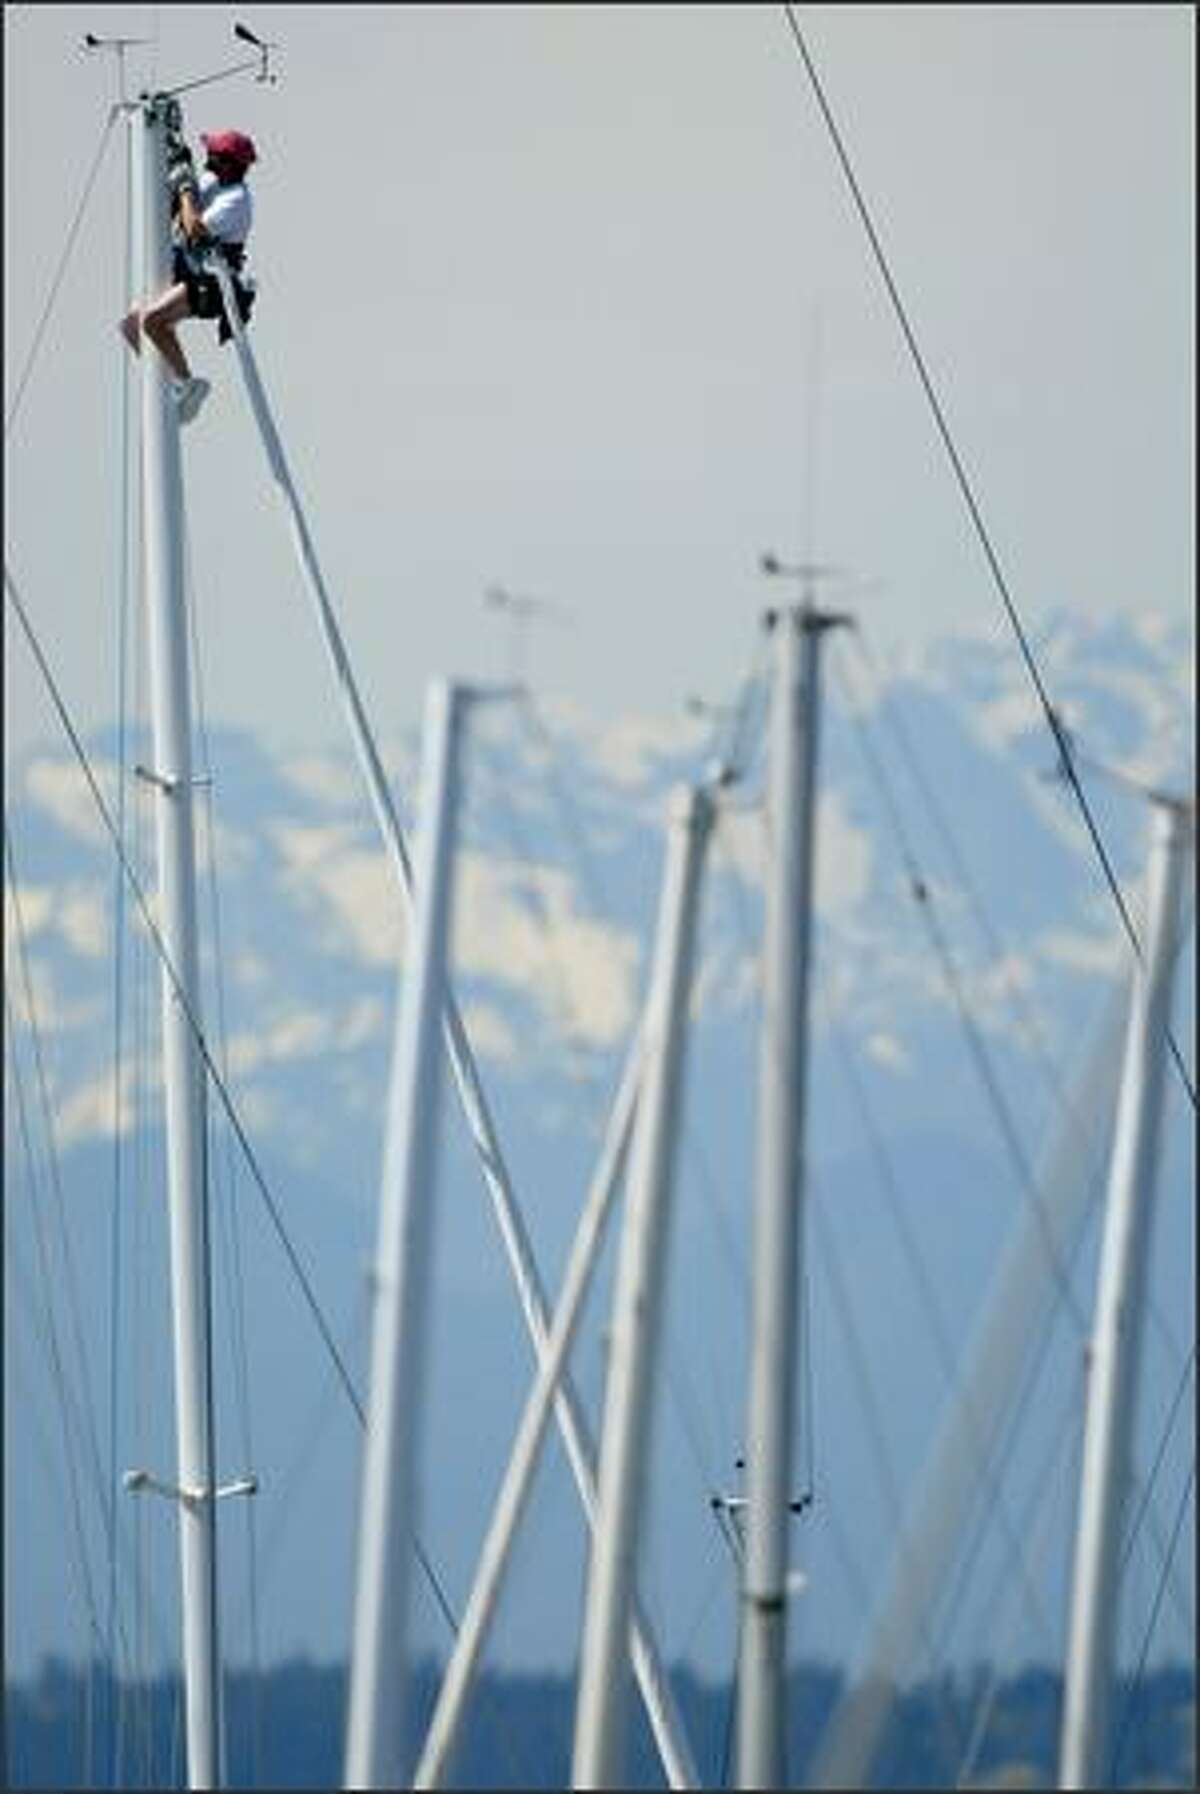 Dave White takes advantage of warm weather and is hoisted up the mast while he works on the rigging of the sailboat Kaulana at Shilshole Bay Marina in Ballard on Friday in Seattle. The Olympic Mountians are seen in the background.